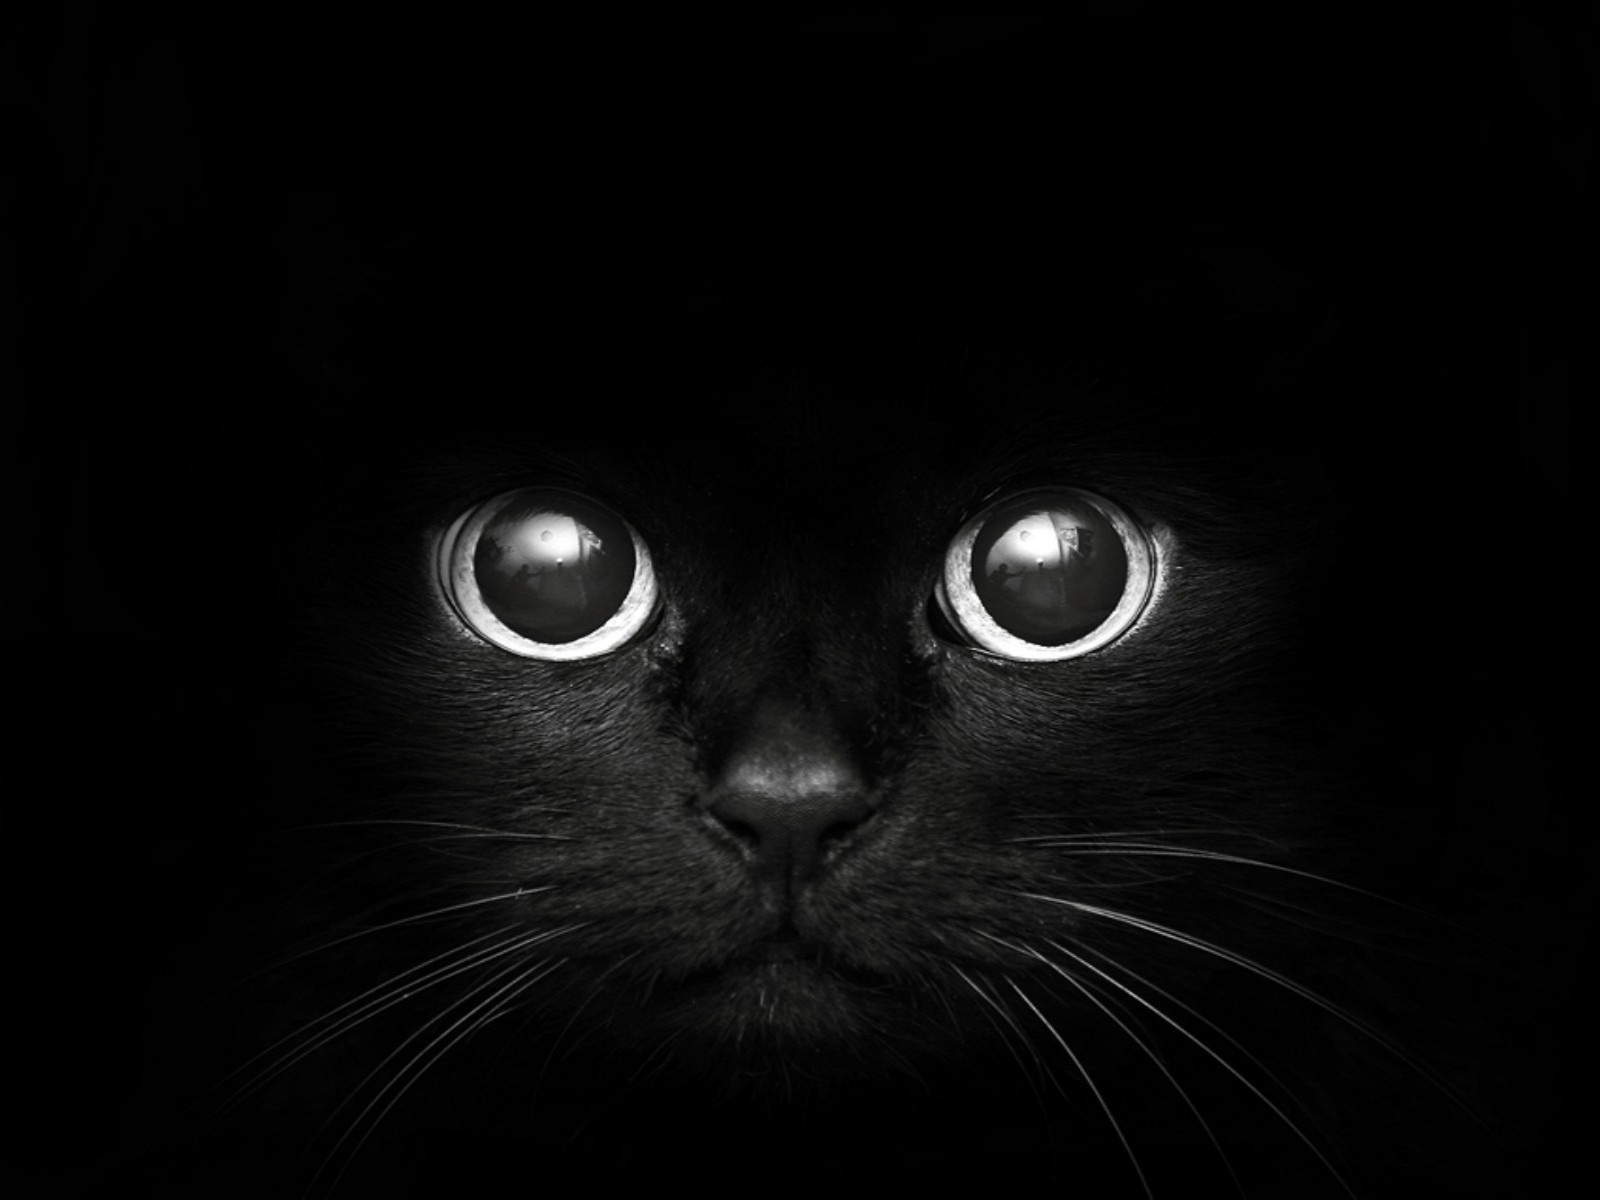 http://eskipaper.com/images/black-cat-wallpaper-4.jpg